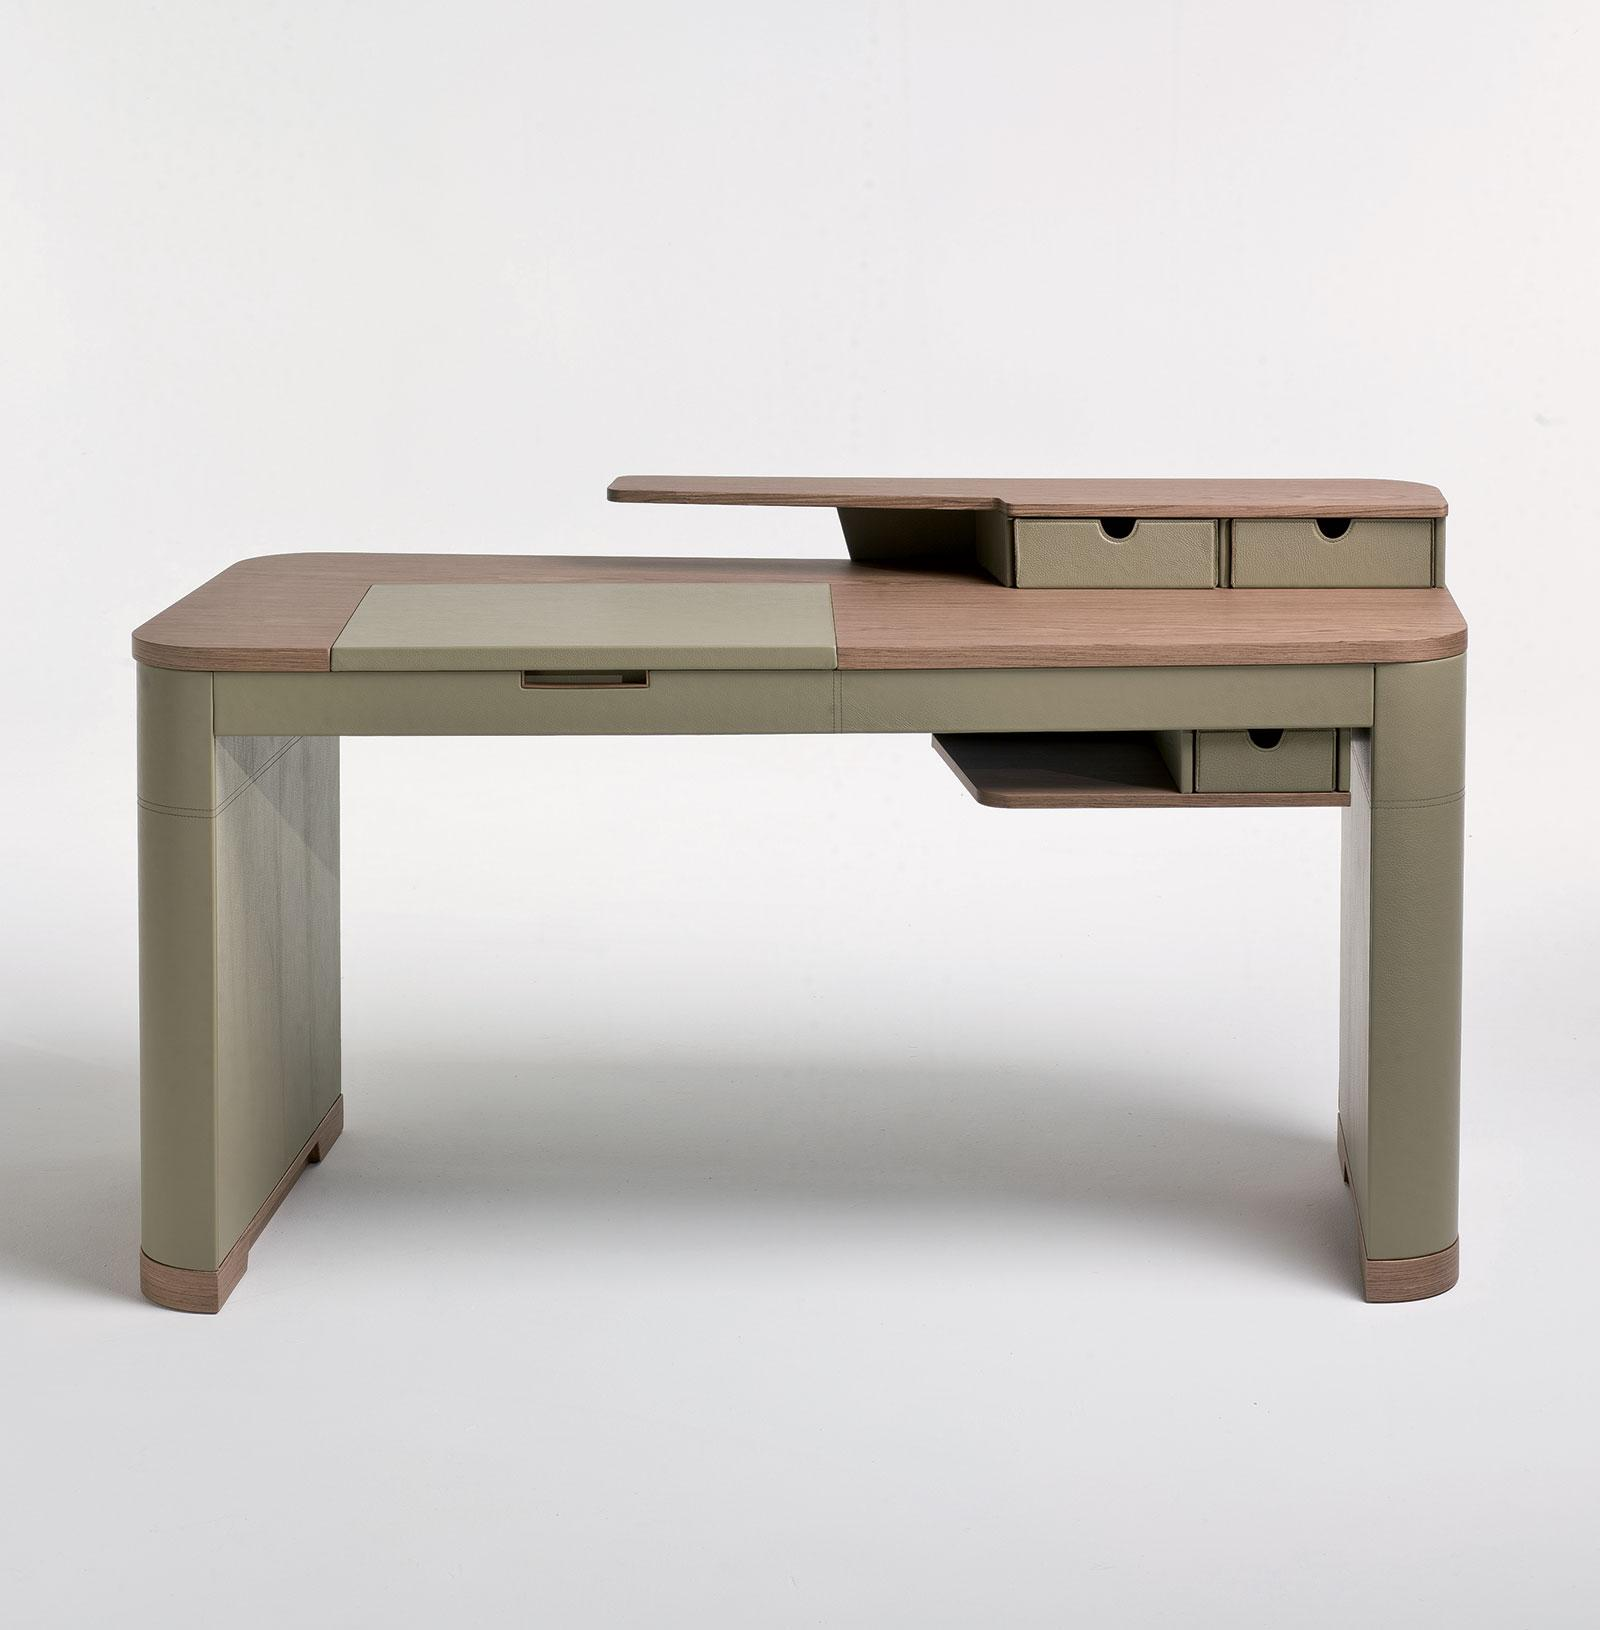 Writing Desk Furniture S Design Delivery Factors Home Italia Market Makers Manufacturers Quality Retailers